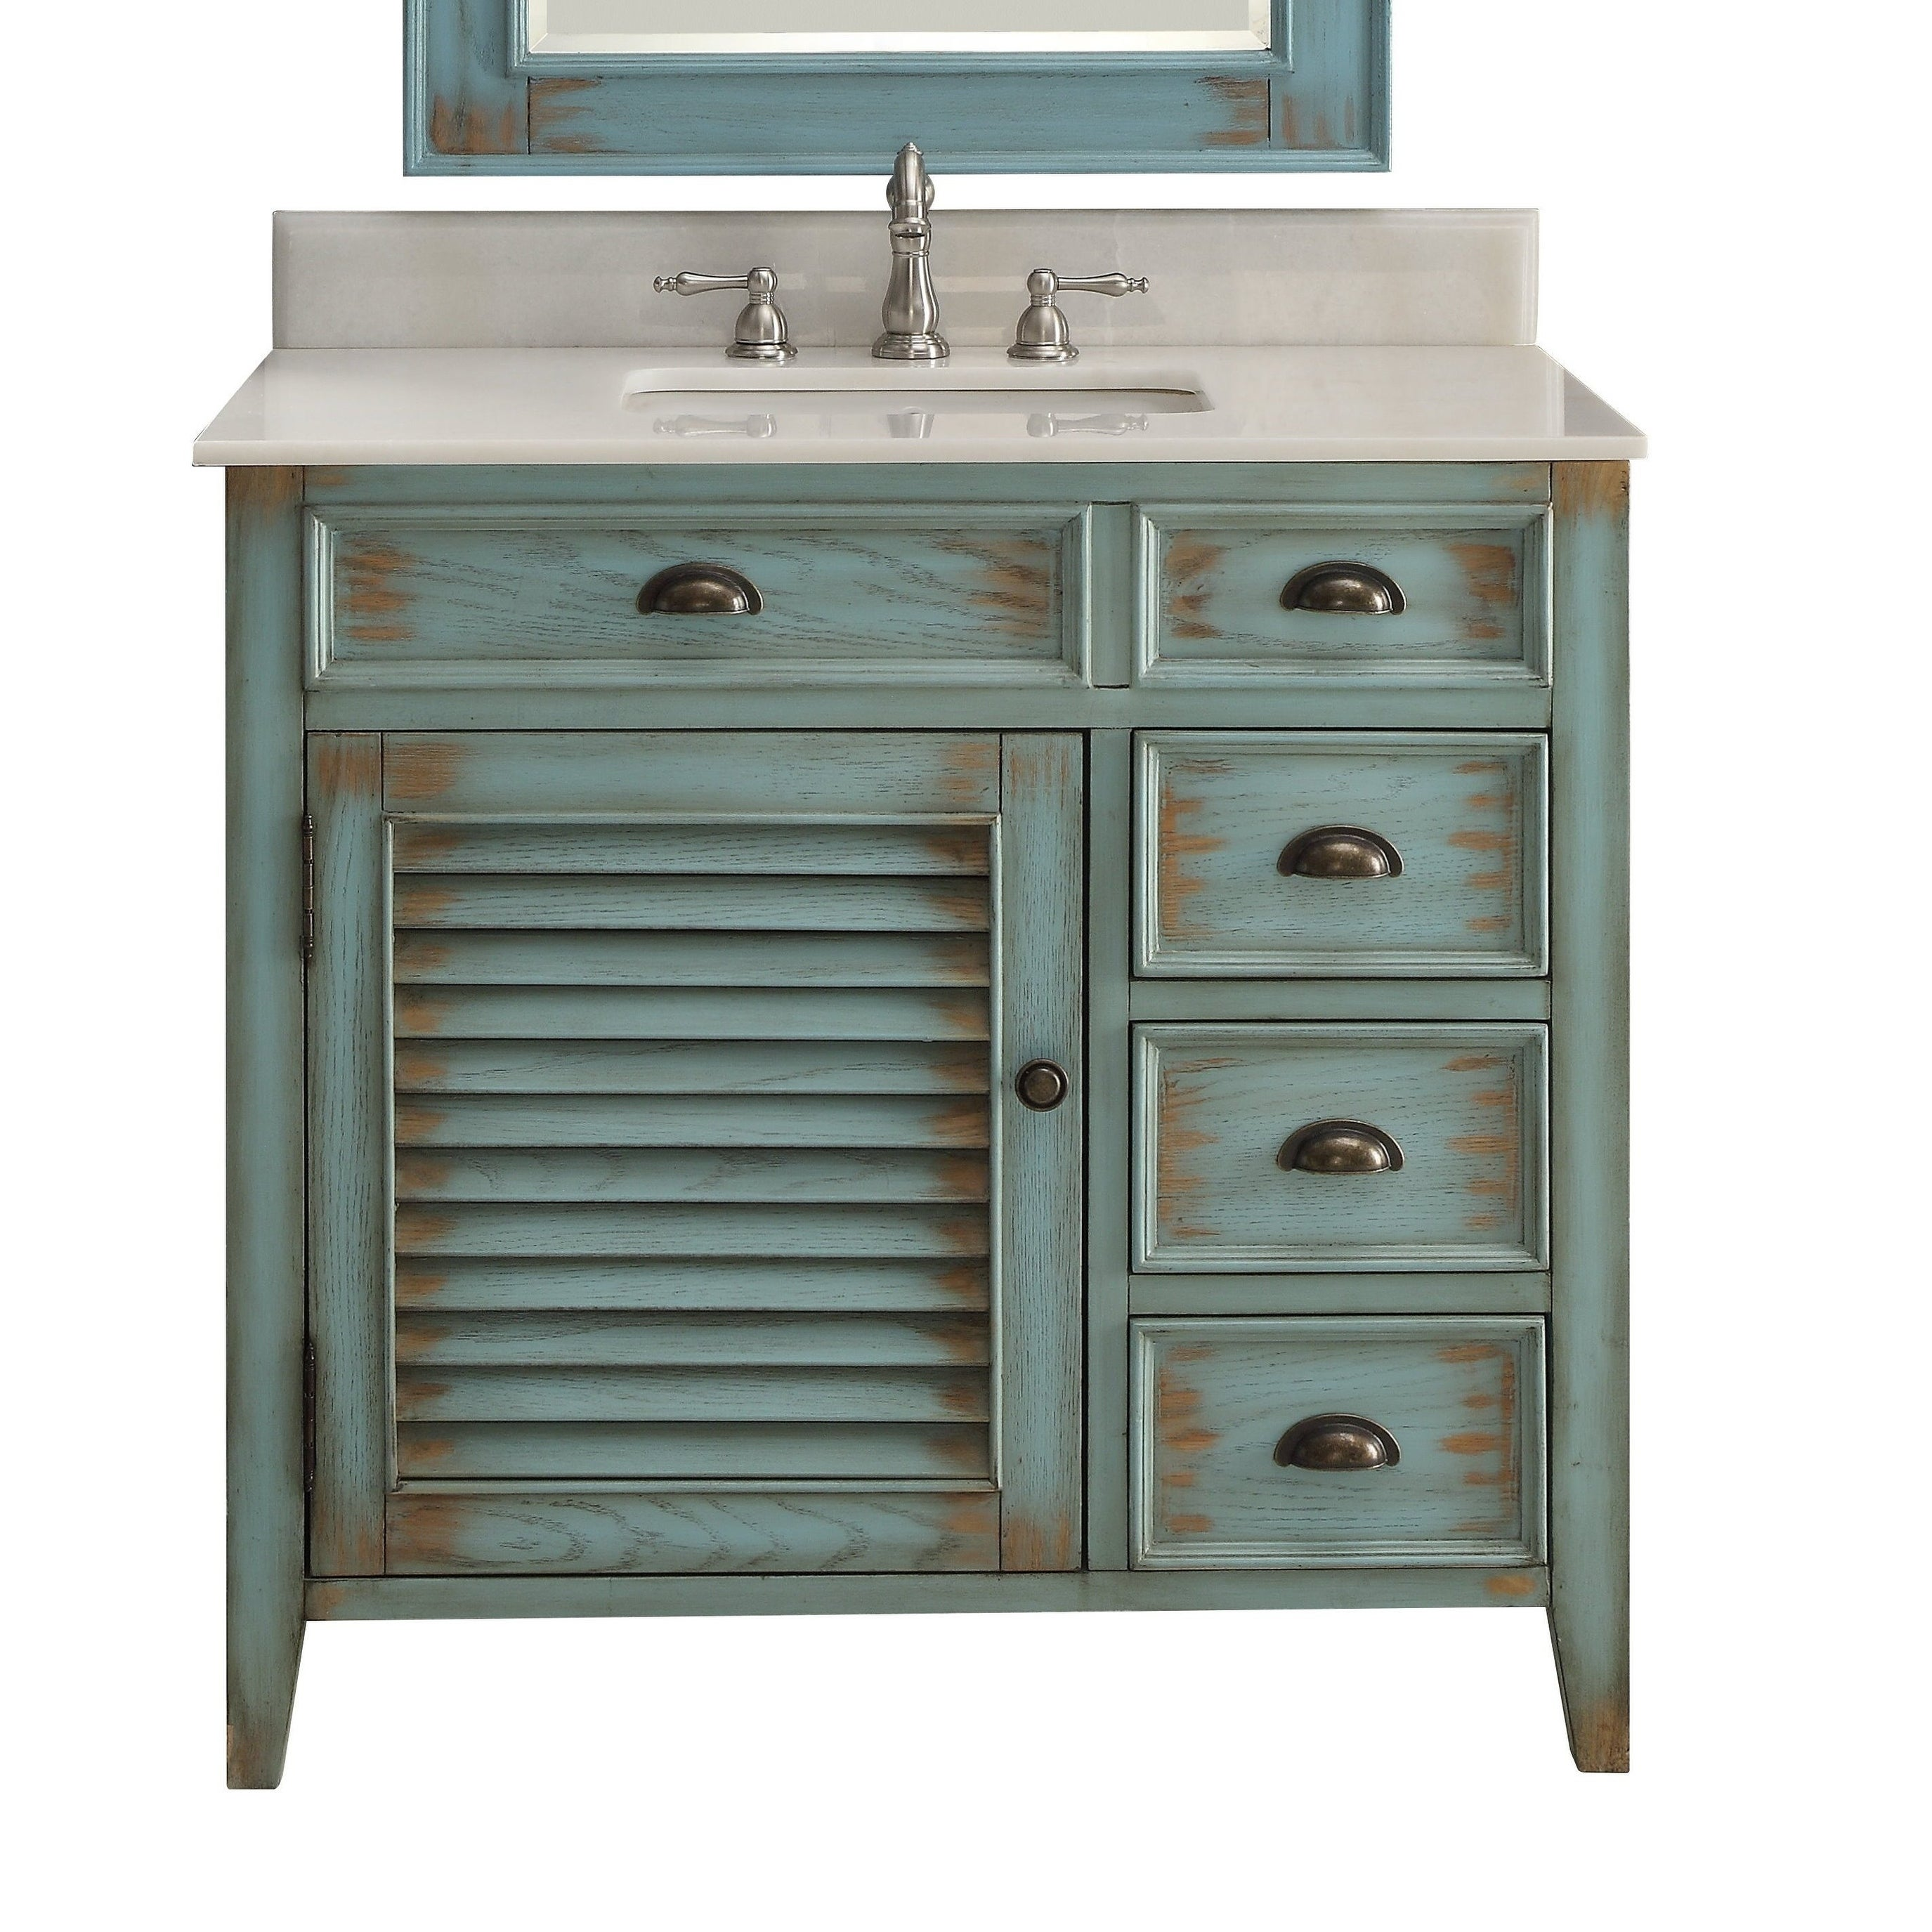 Benton Collection Abbeville 36 Inch Farmhouse Rustic Bathroom Vanity On Sale Overstock 27661588